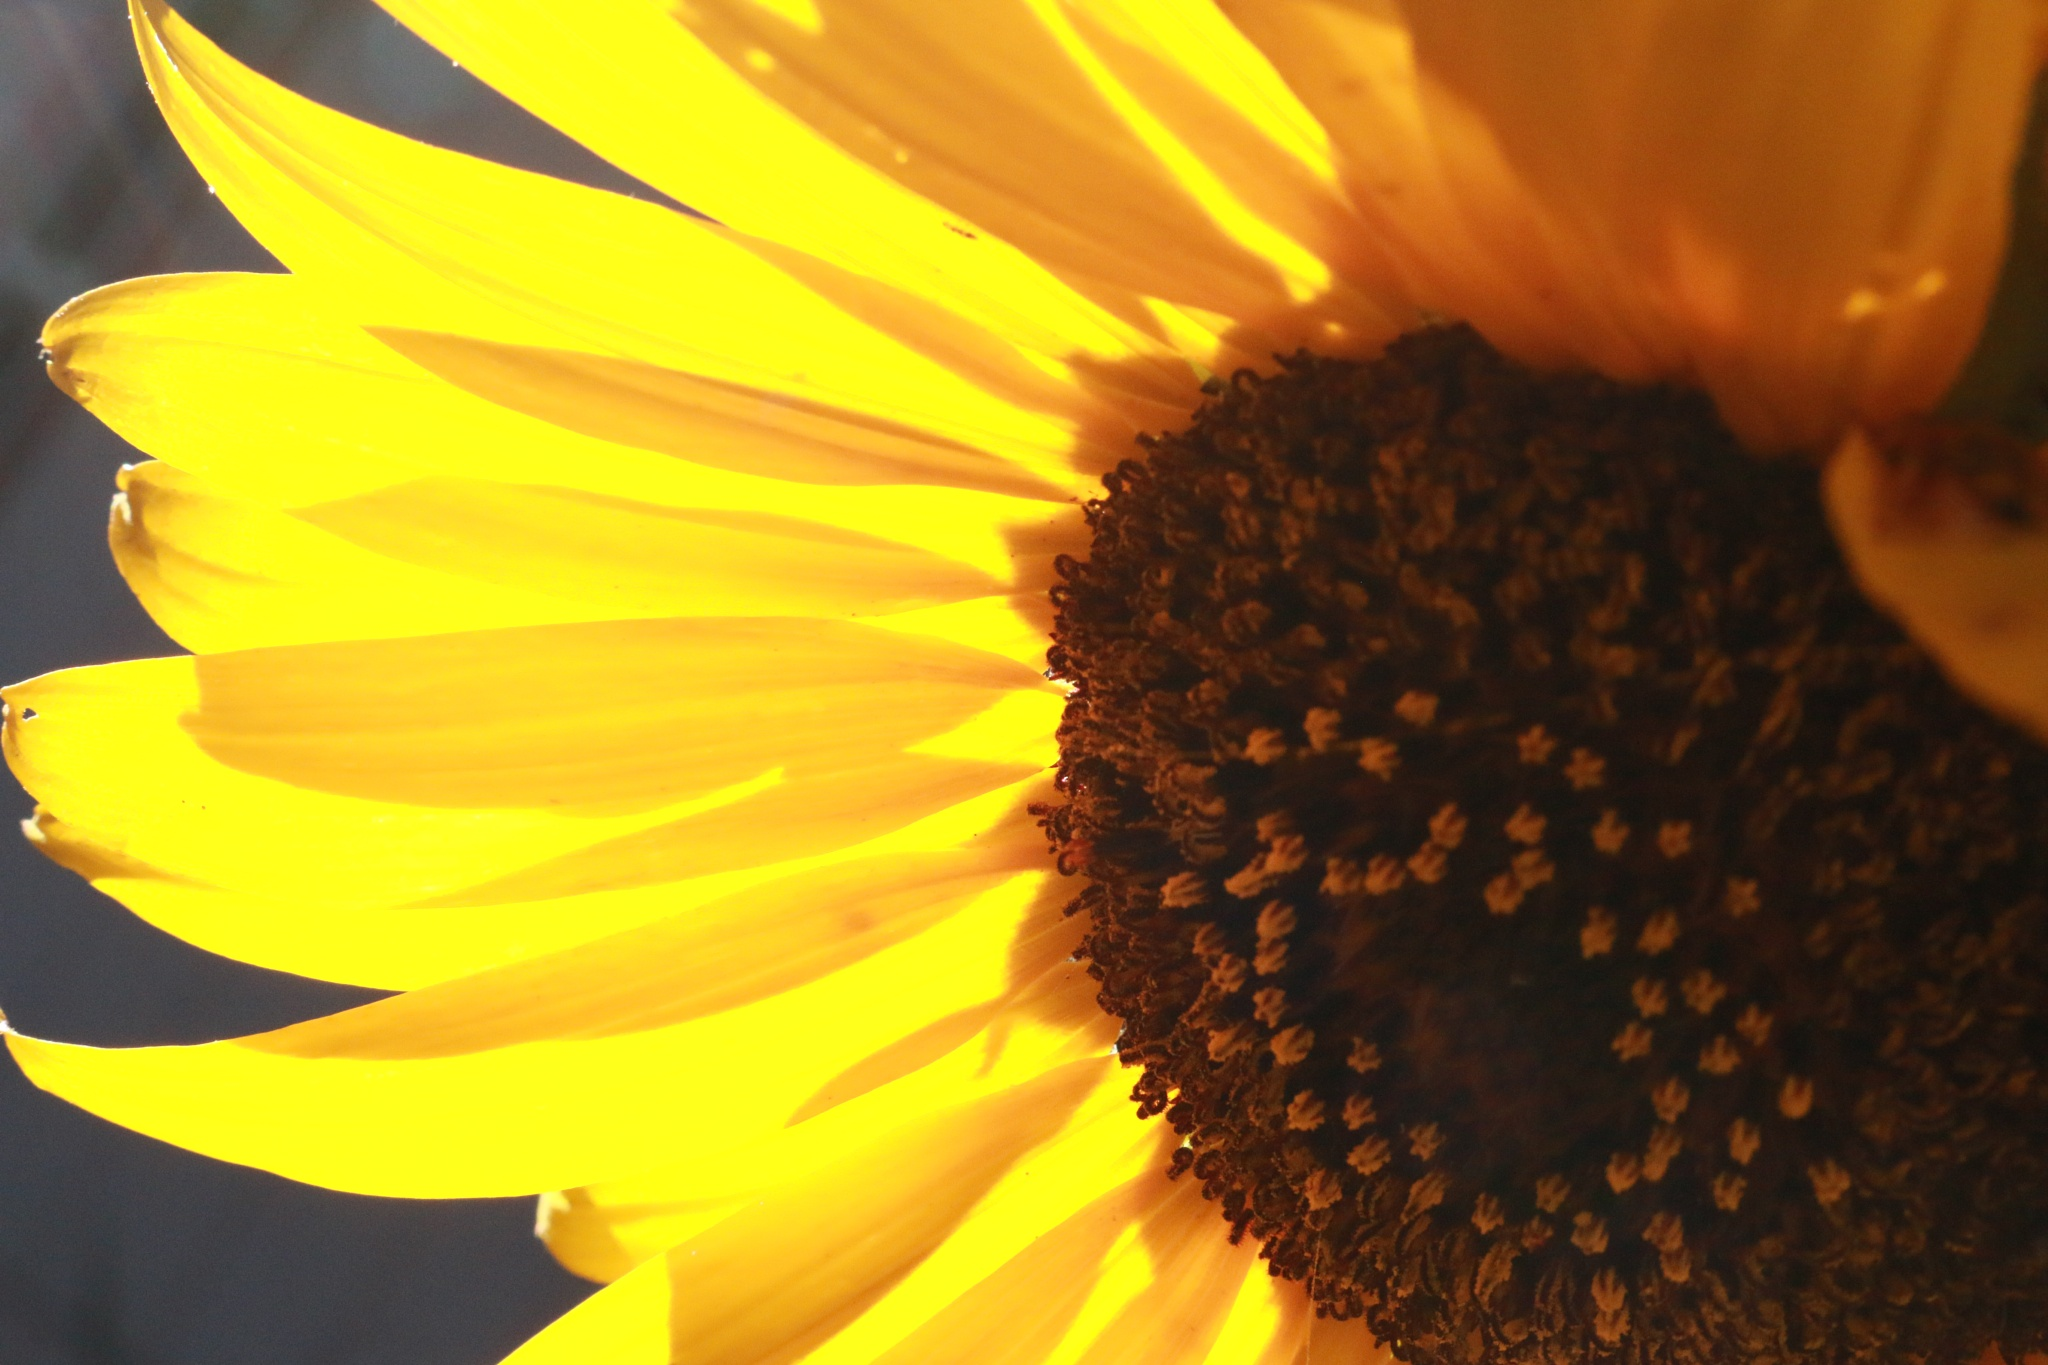 Sunflower by Laurie Puglia